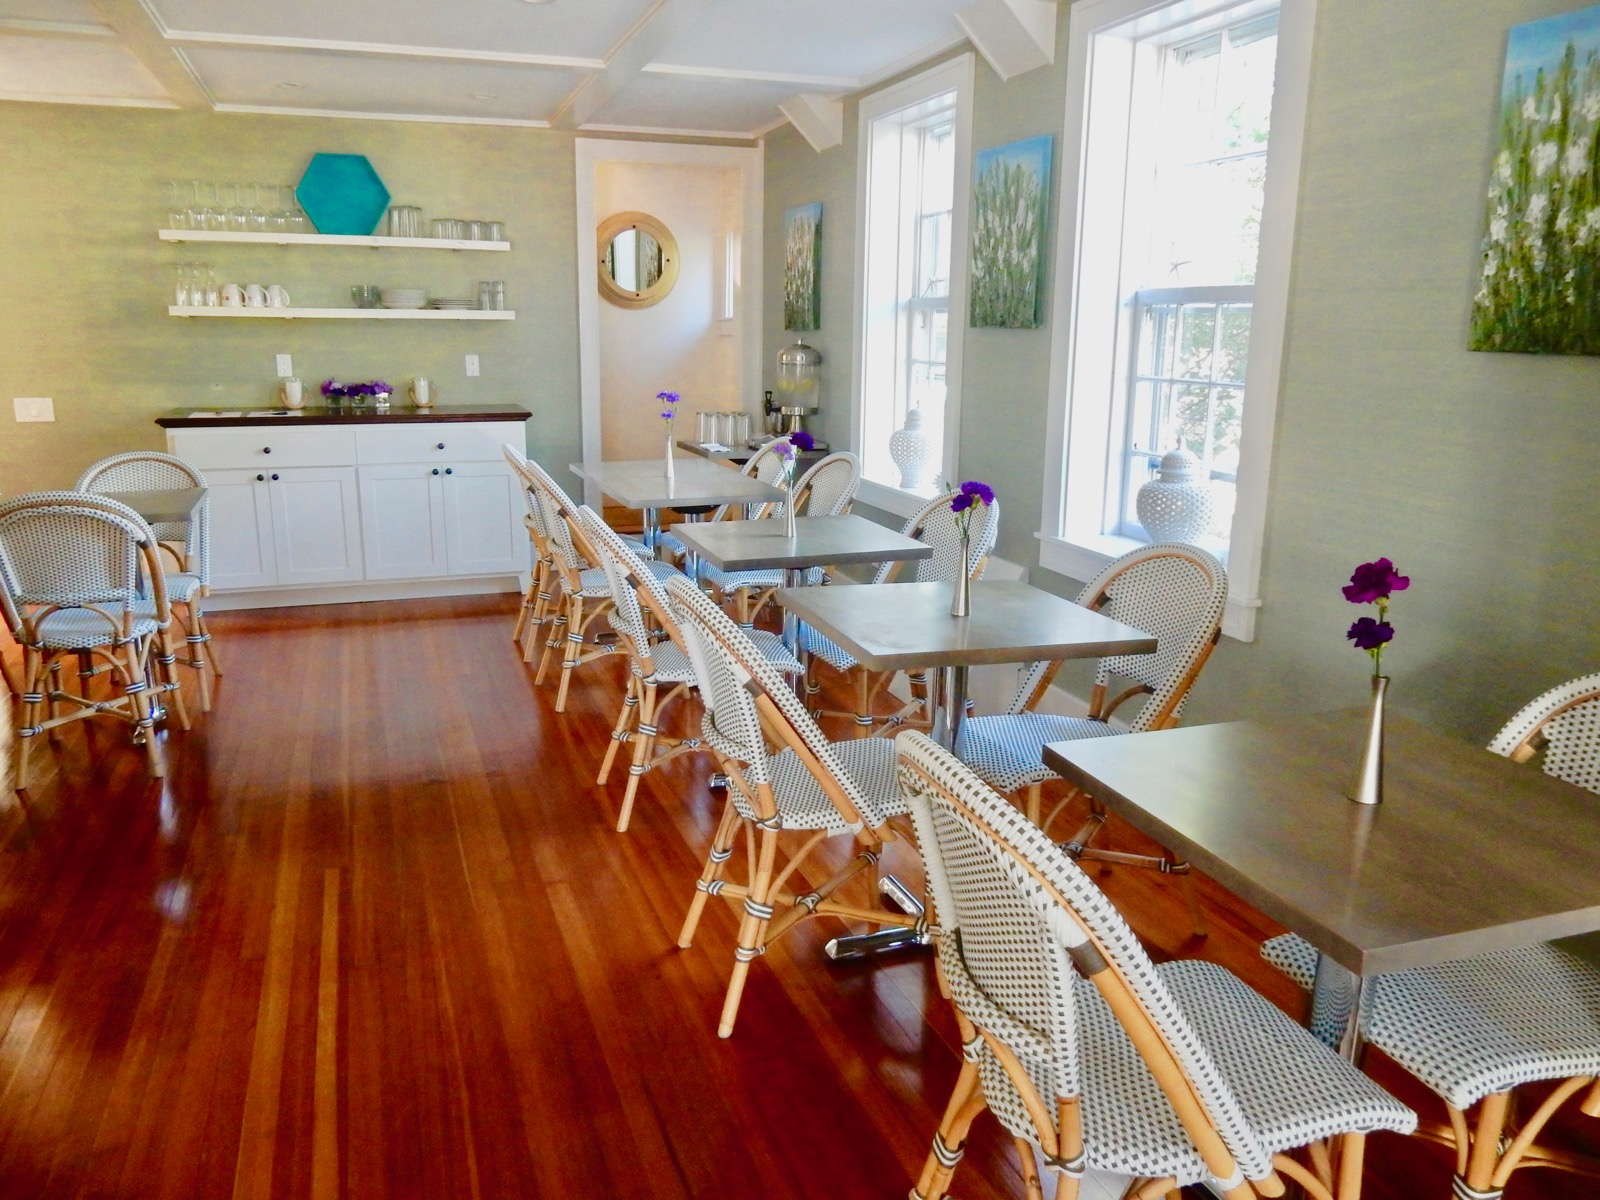 REGATTA INN BED AND BREAKFAST ADULT ONLY FollyBeach UnitedStates